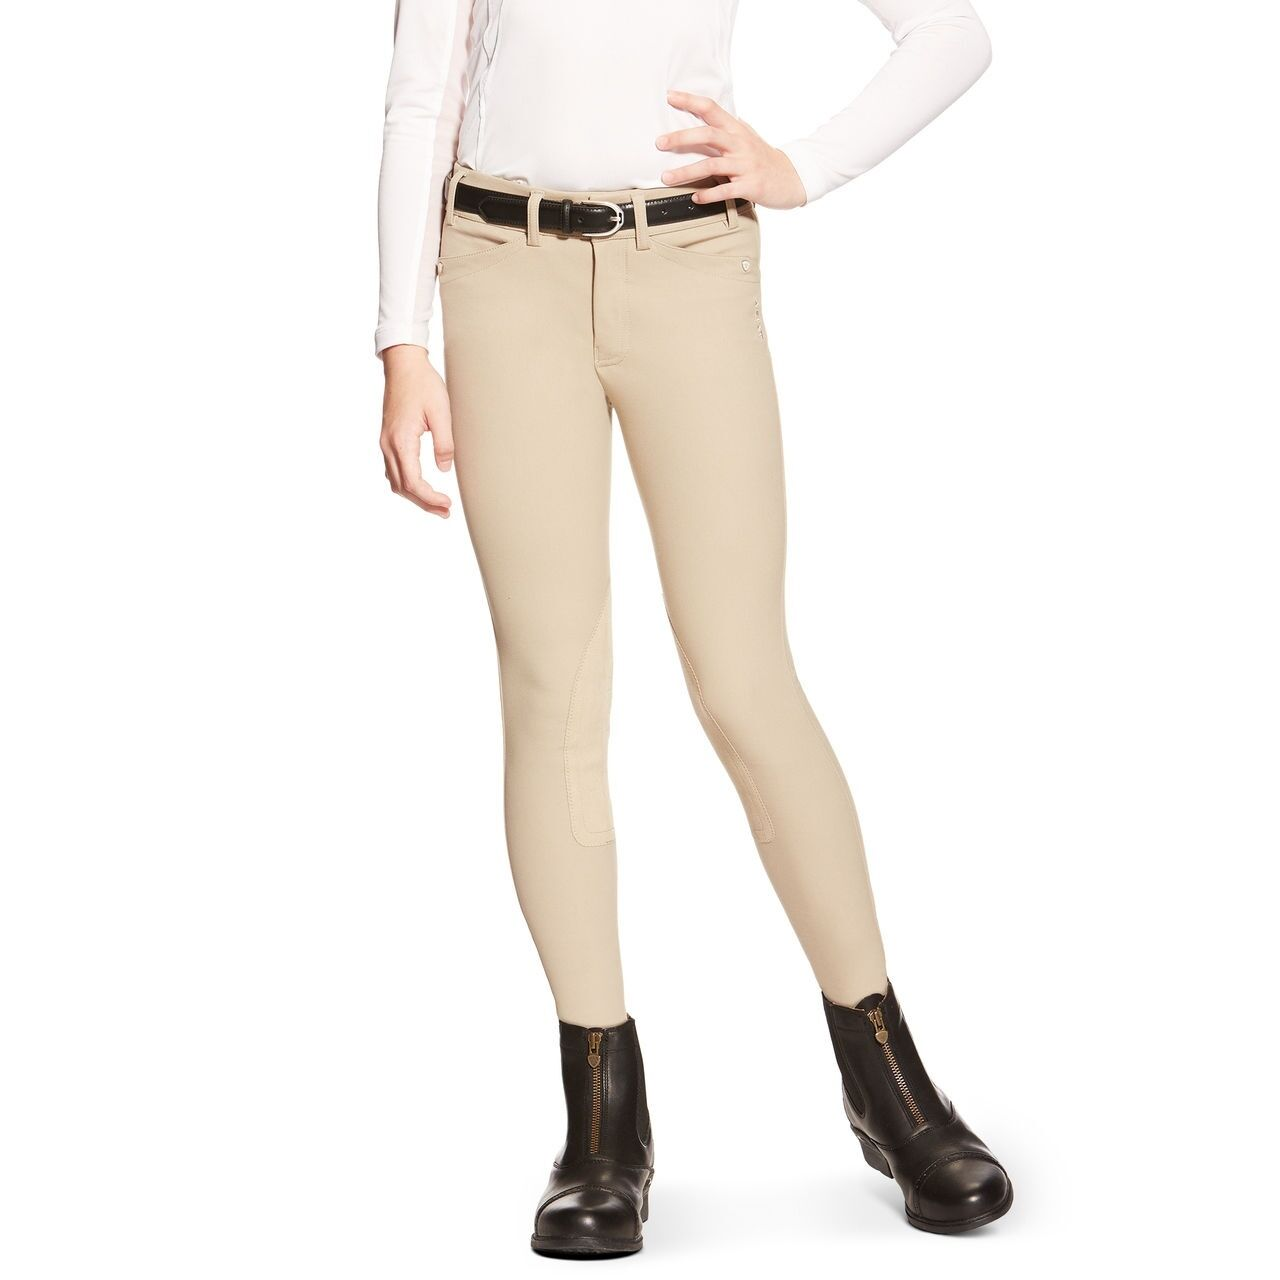 Ariat Heritage ELITE Girls Kids Knee Patch Front Zip Breeches - Tan - All Sizes